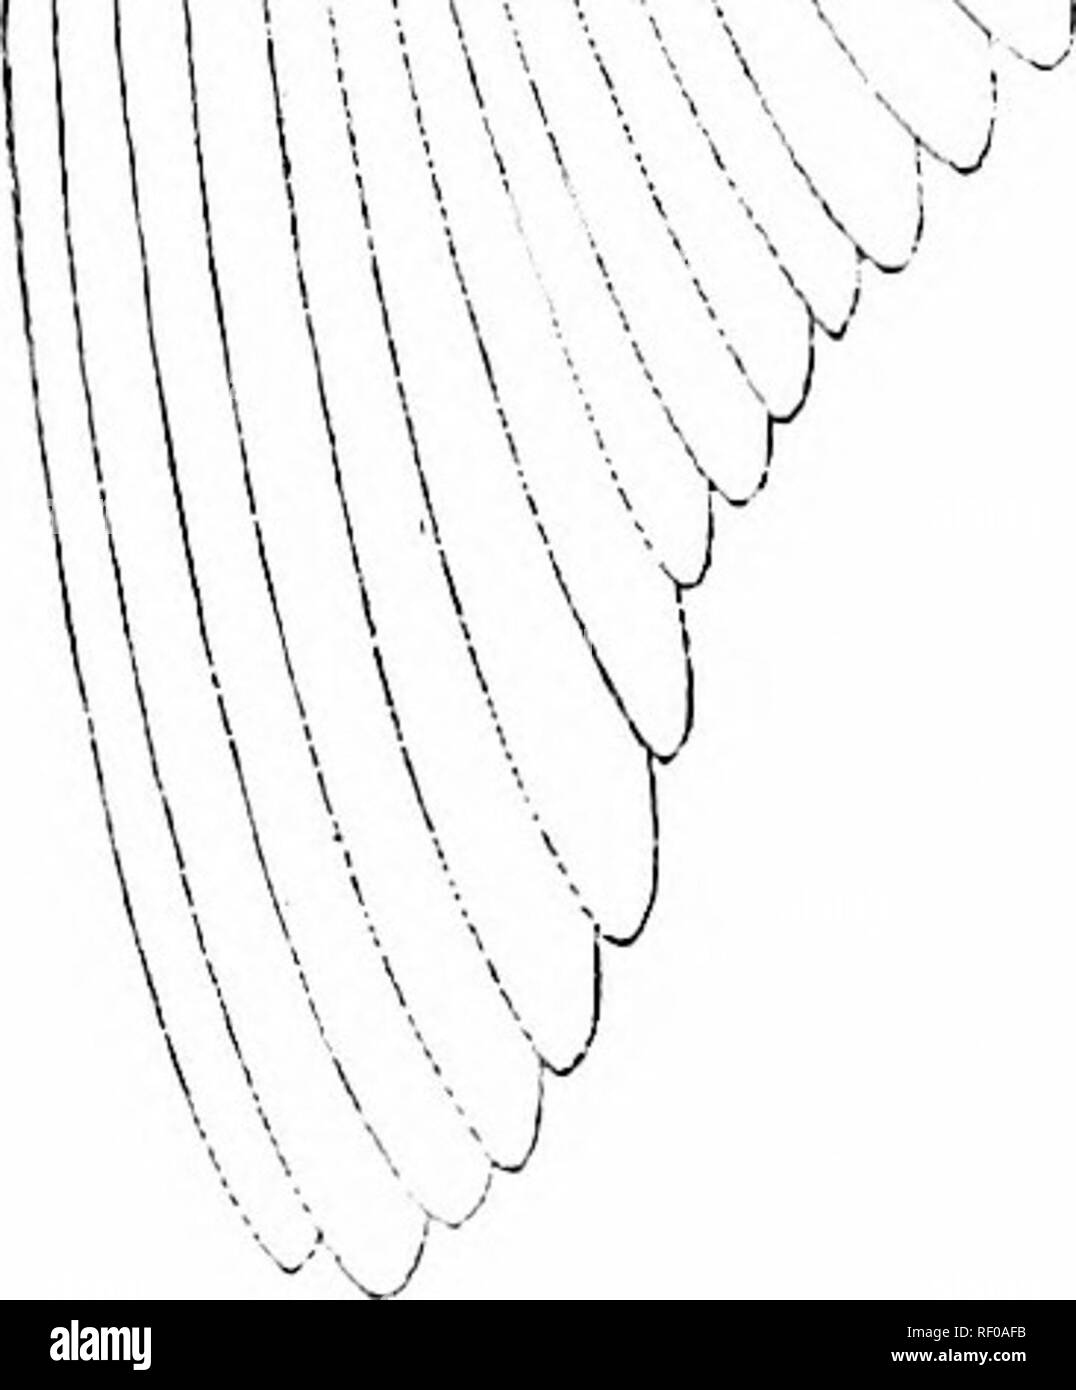 """. A manual of zoology. V7^ v , z/.apl      v hf addg.. pr.dg.rmg [//]. >â XV2/ UAy^#^» UV6j